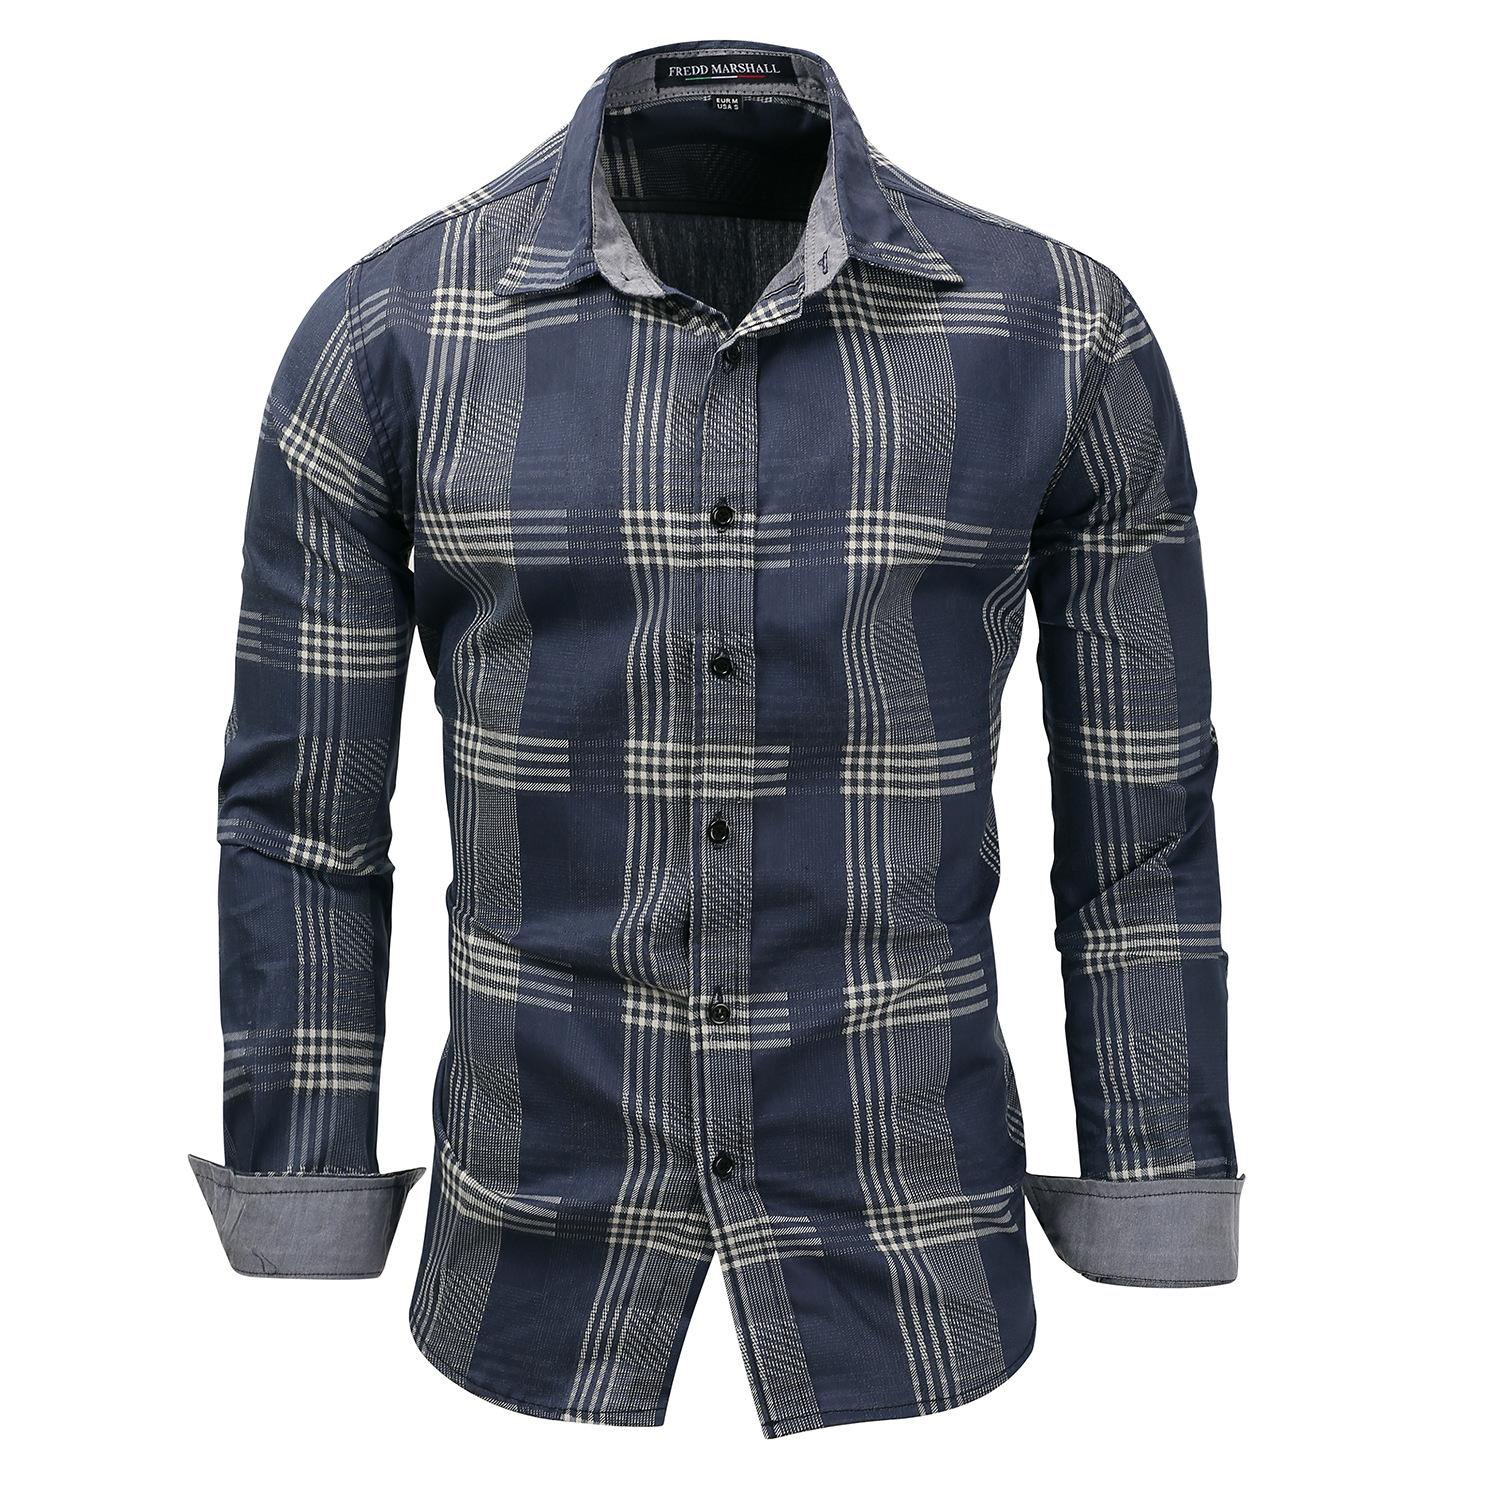 b55b8eb82c 2019 Denim Blue Plaid Shirt Men Shirts 2018 New Summer Fashion Chemise  Homme Mens Checkered Shirts Long Sleeve Shirt Men Blouse From Qingchunxu